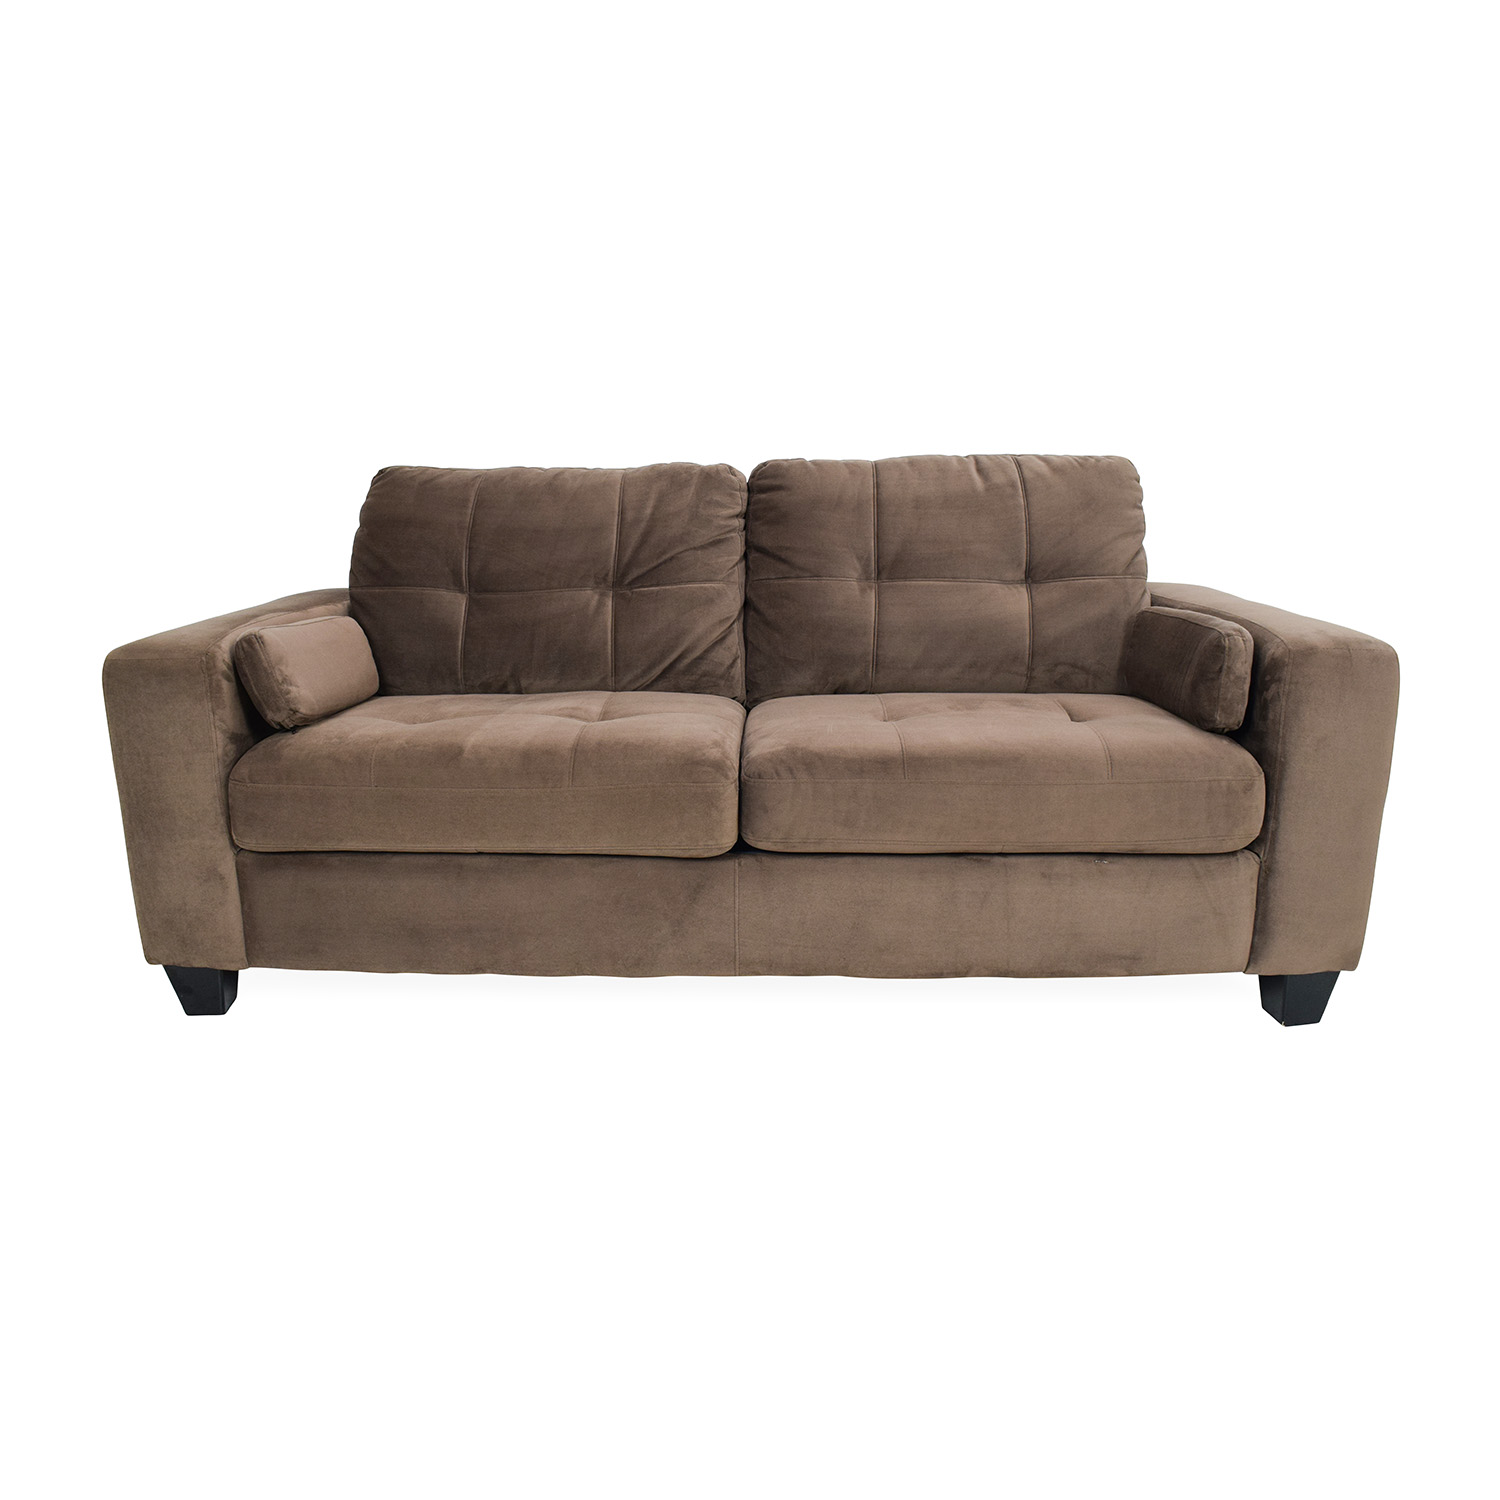 Jennifer Convertibles Full Size Sofa Bed Online